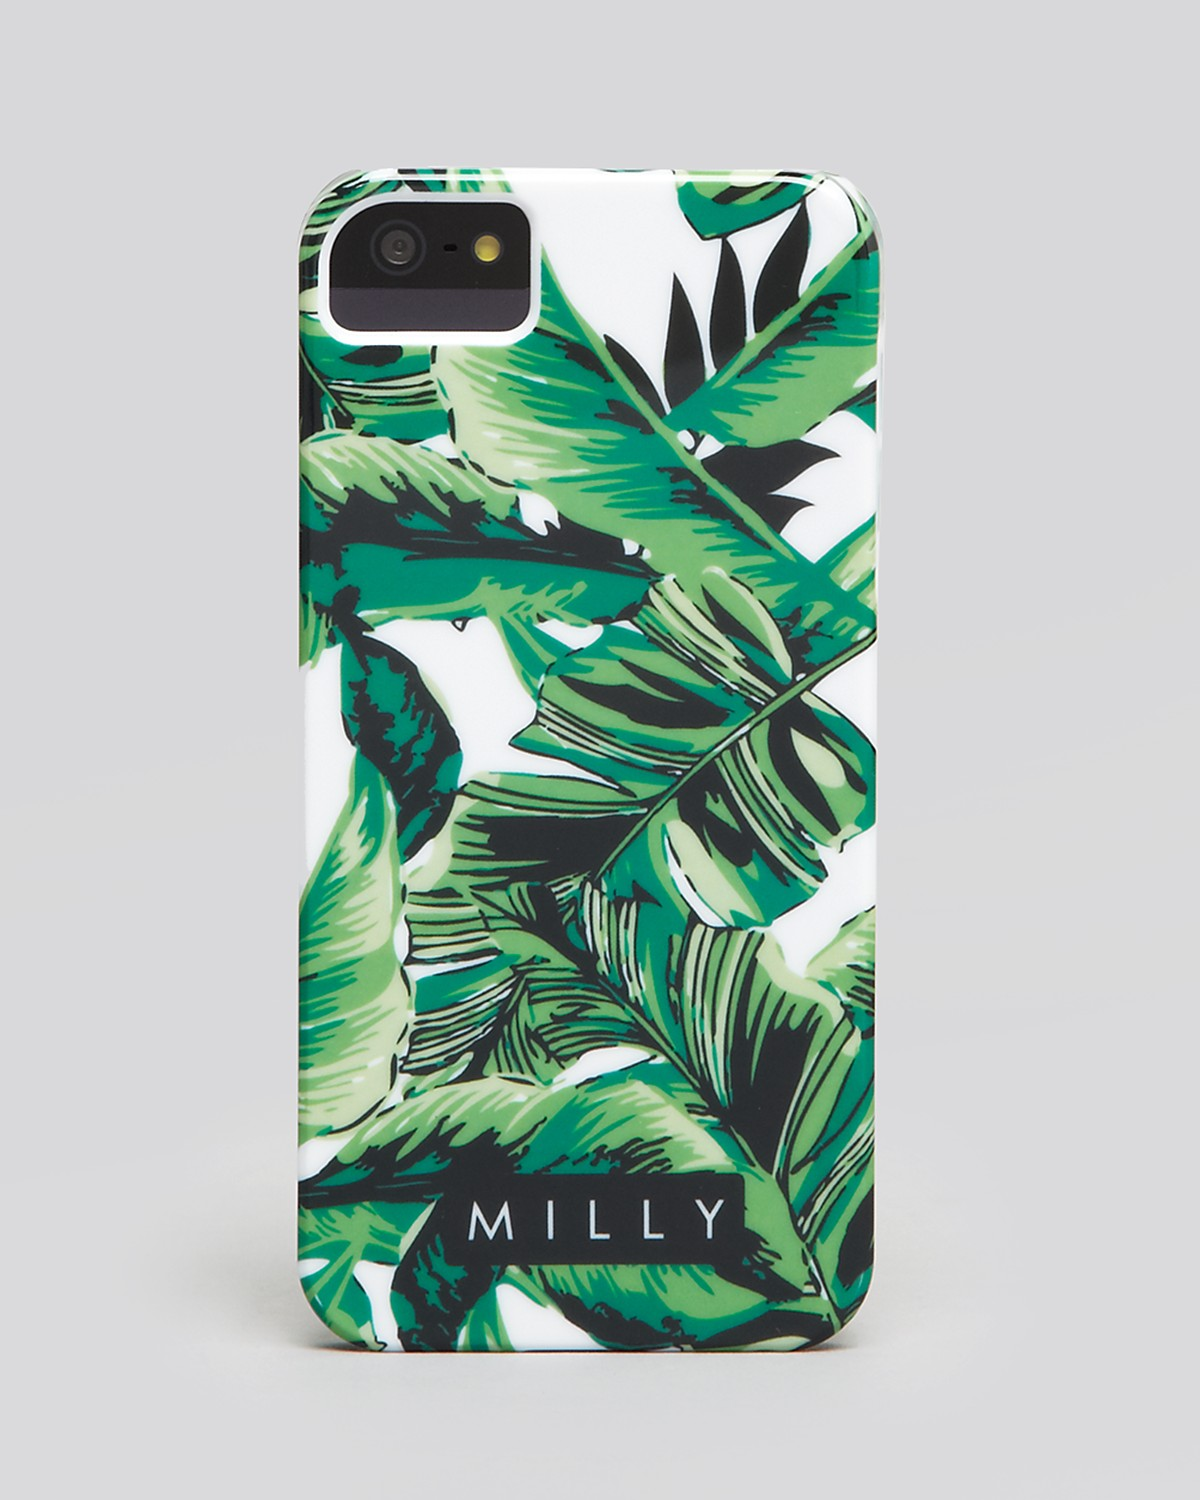 MILLY iPhone 5/5s Case - Banana Leaf | Bloomingdale's